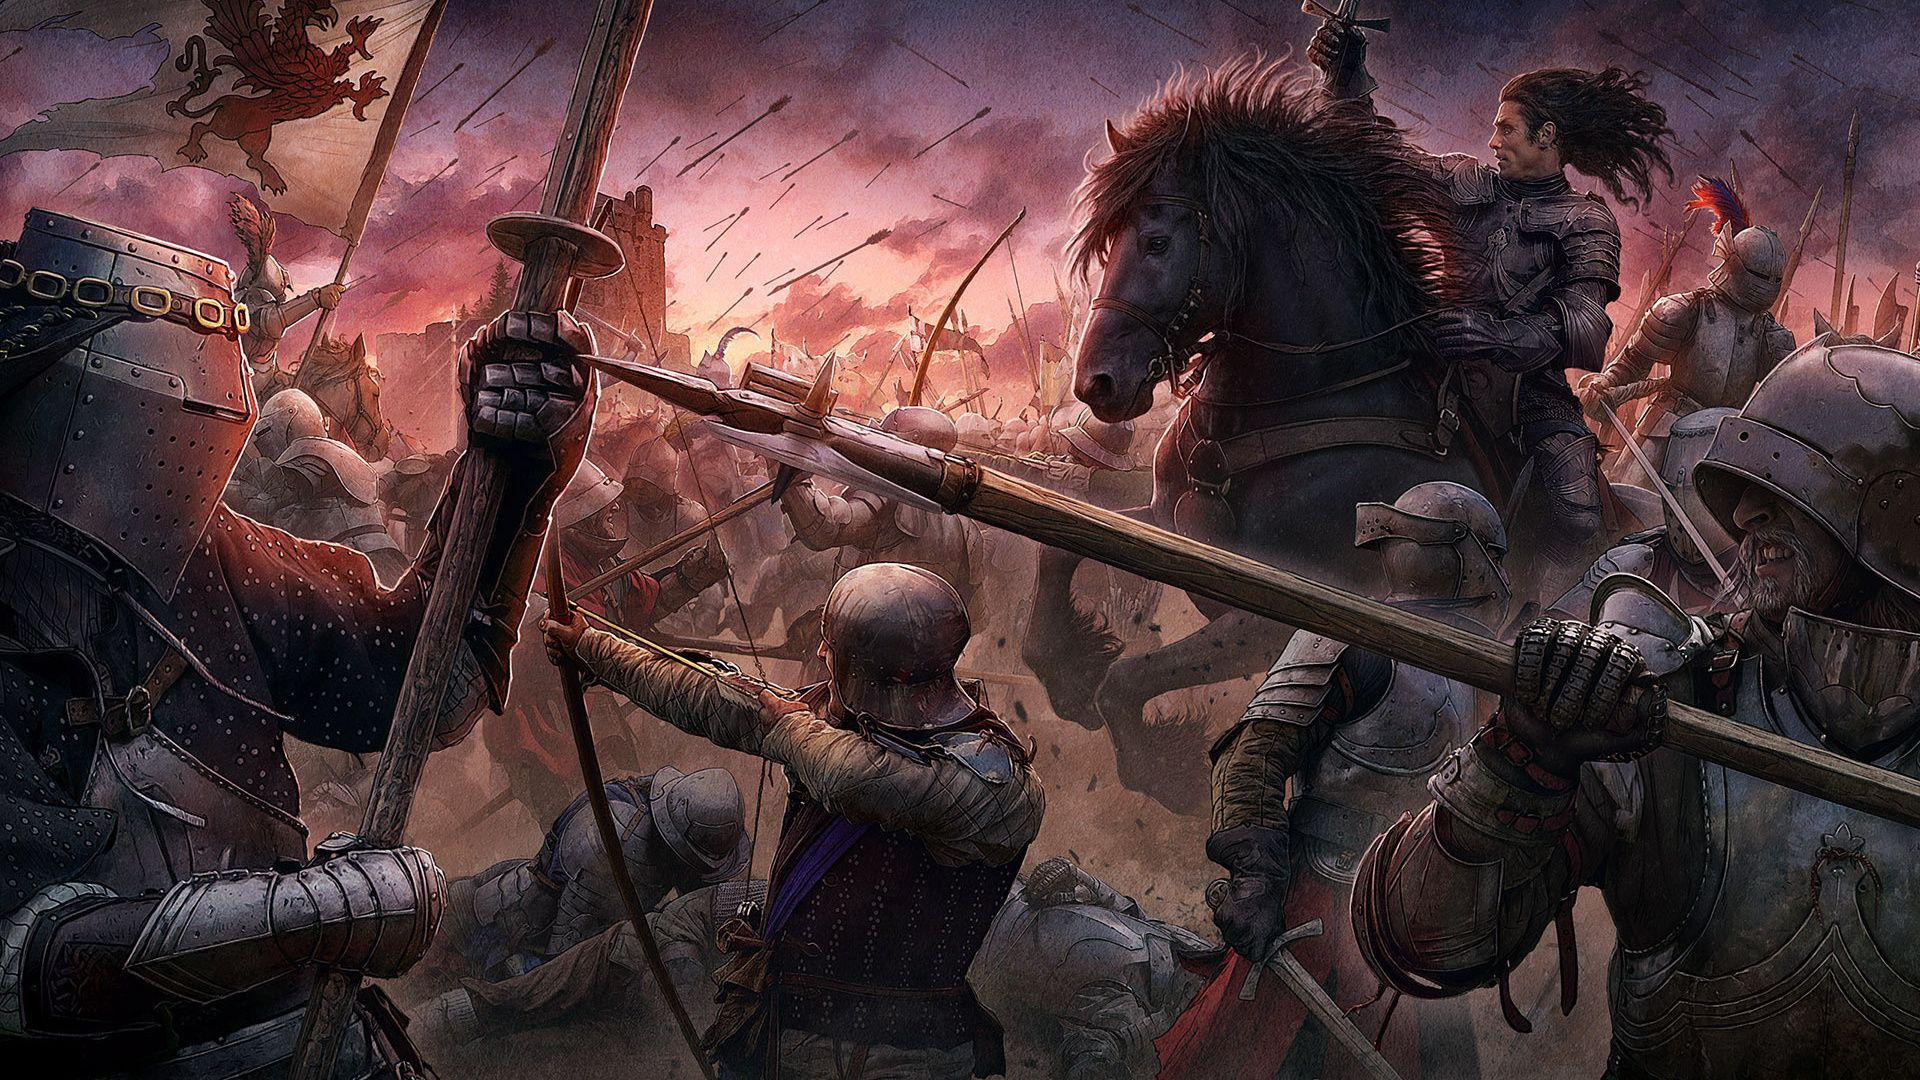 1920x1080 Kerem Beyit, Knights, Medieval Style, Cg Wallpapers, The ...